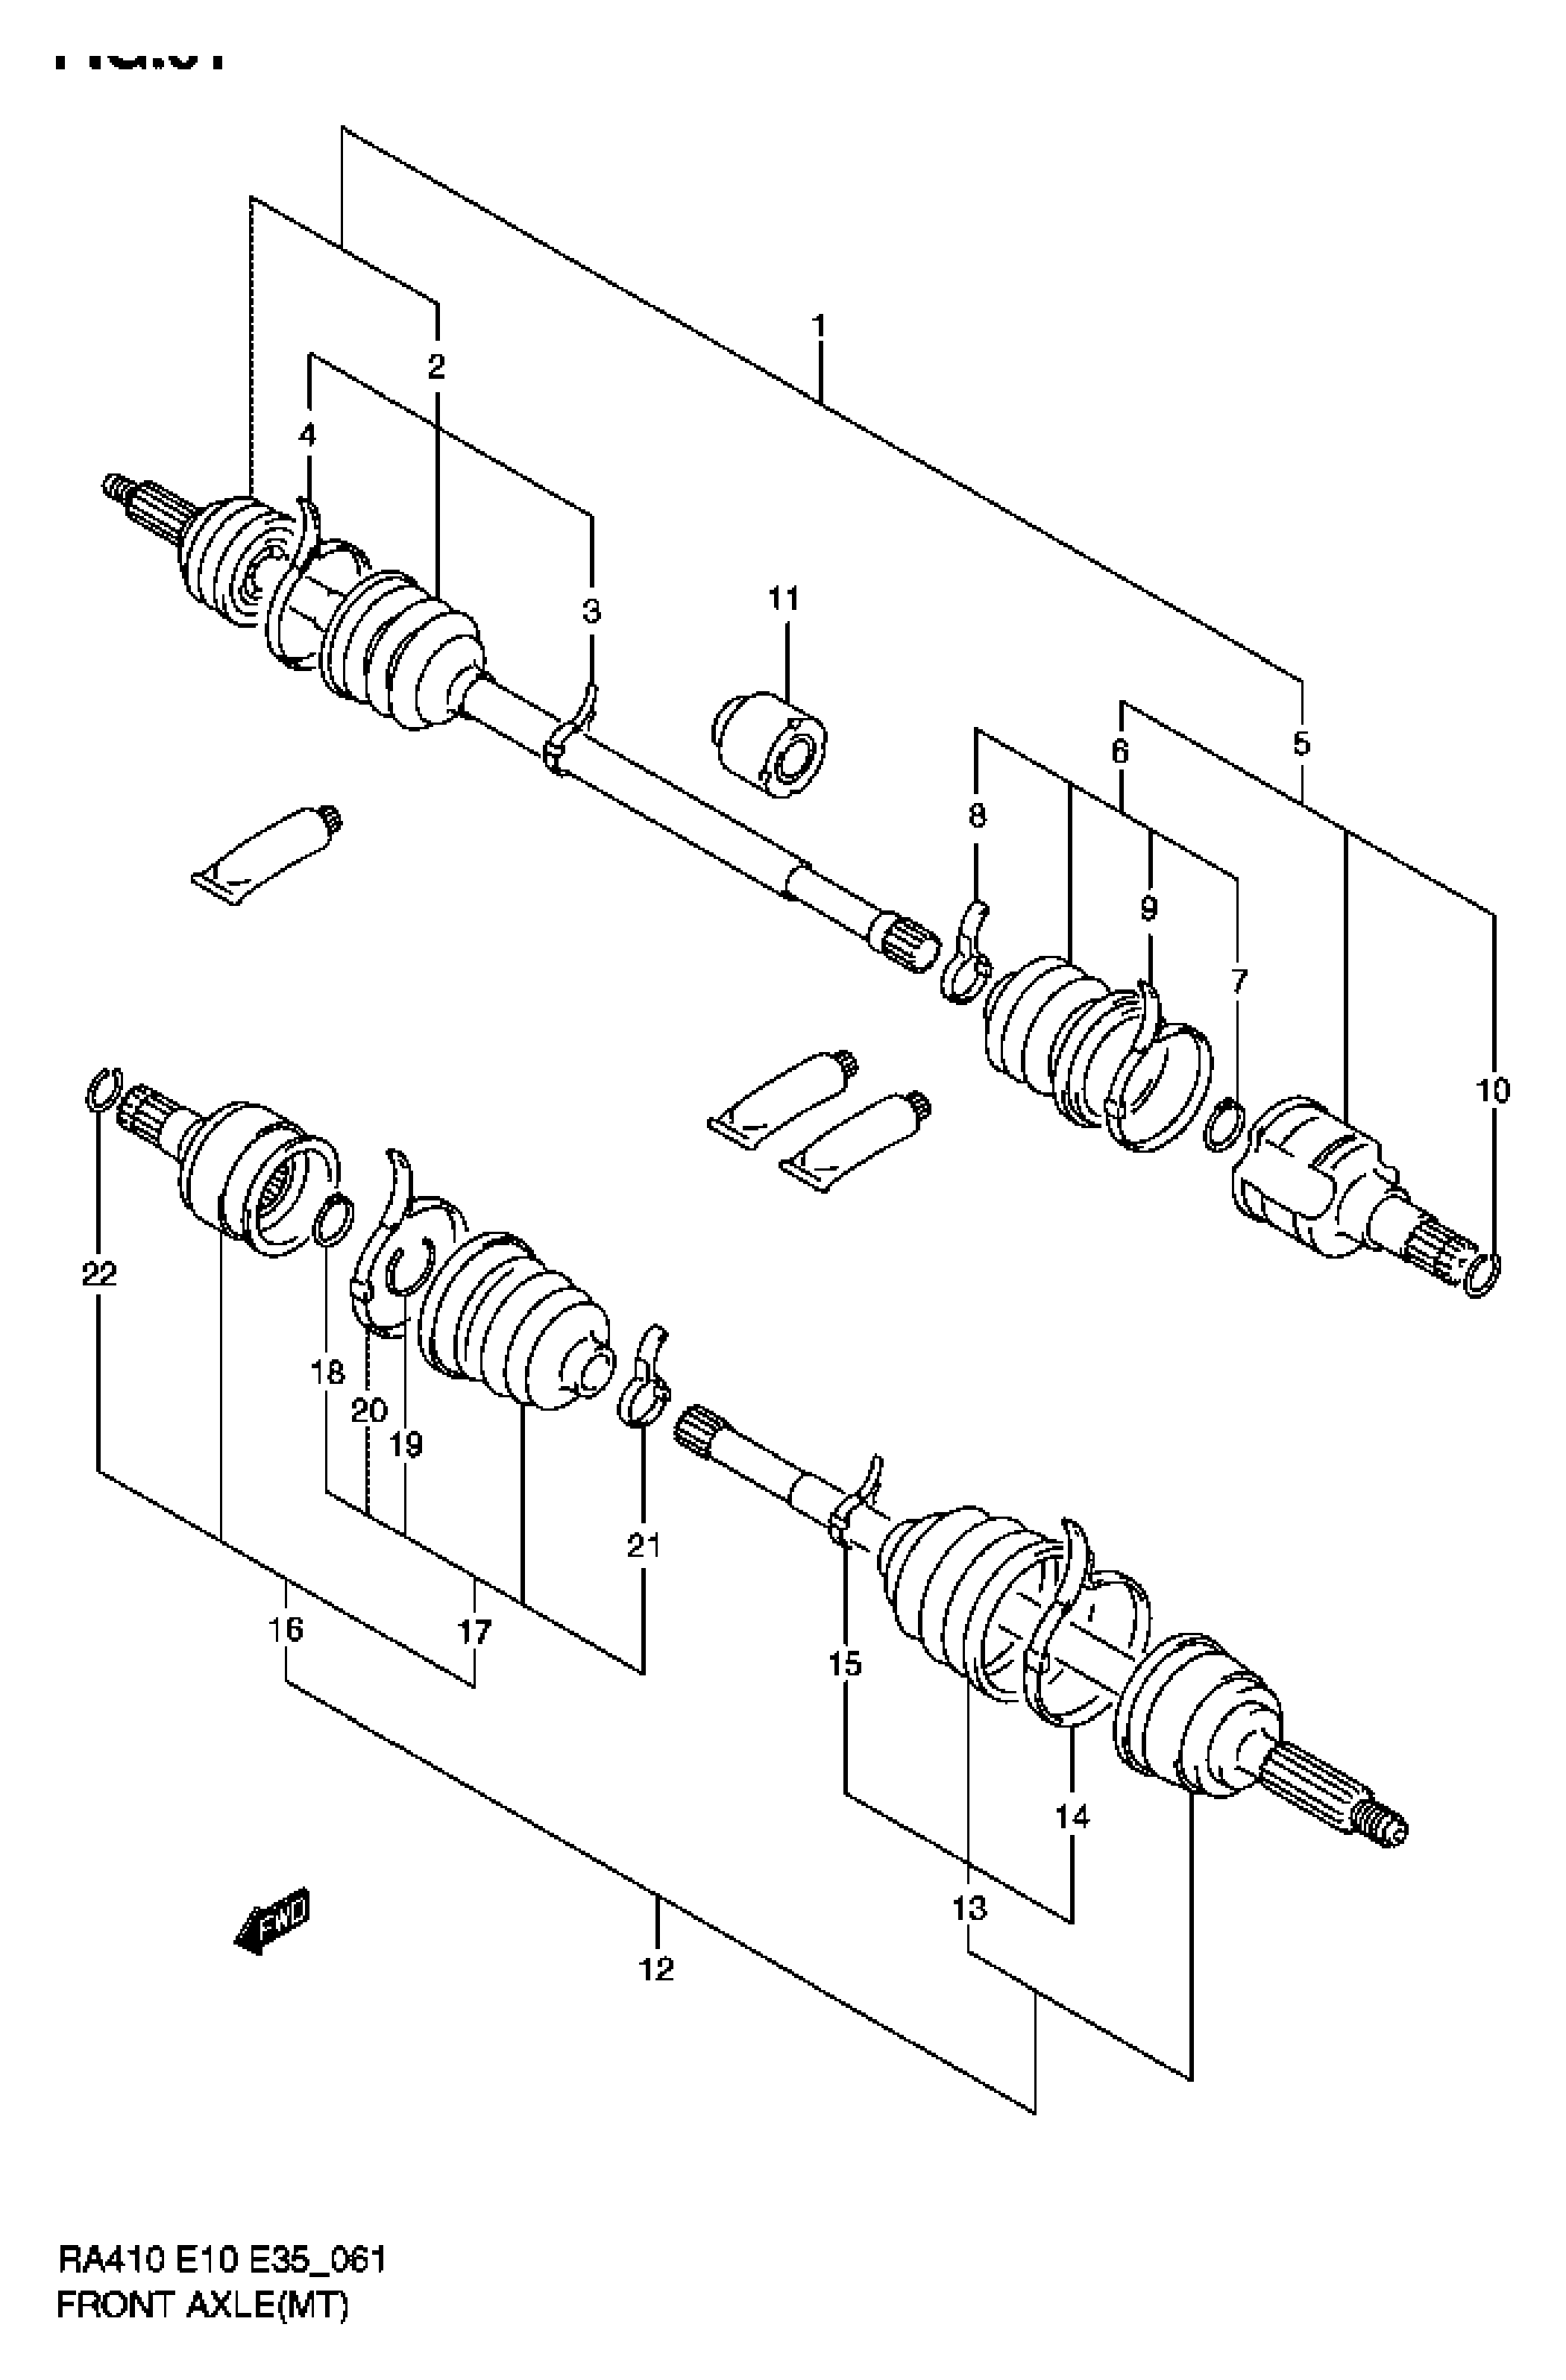 FRONT AXLE (MT)